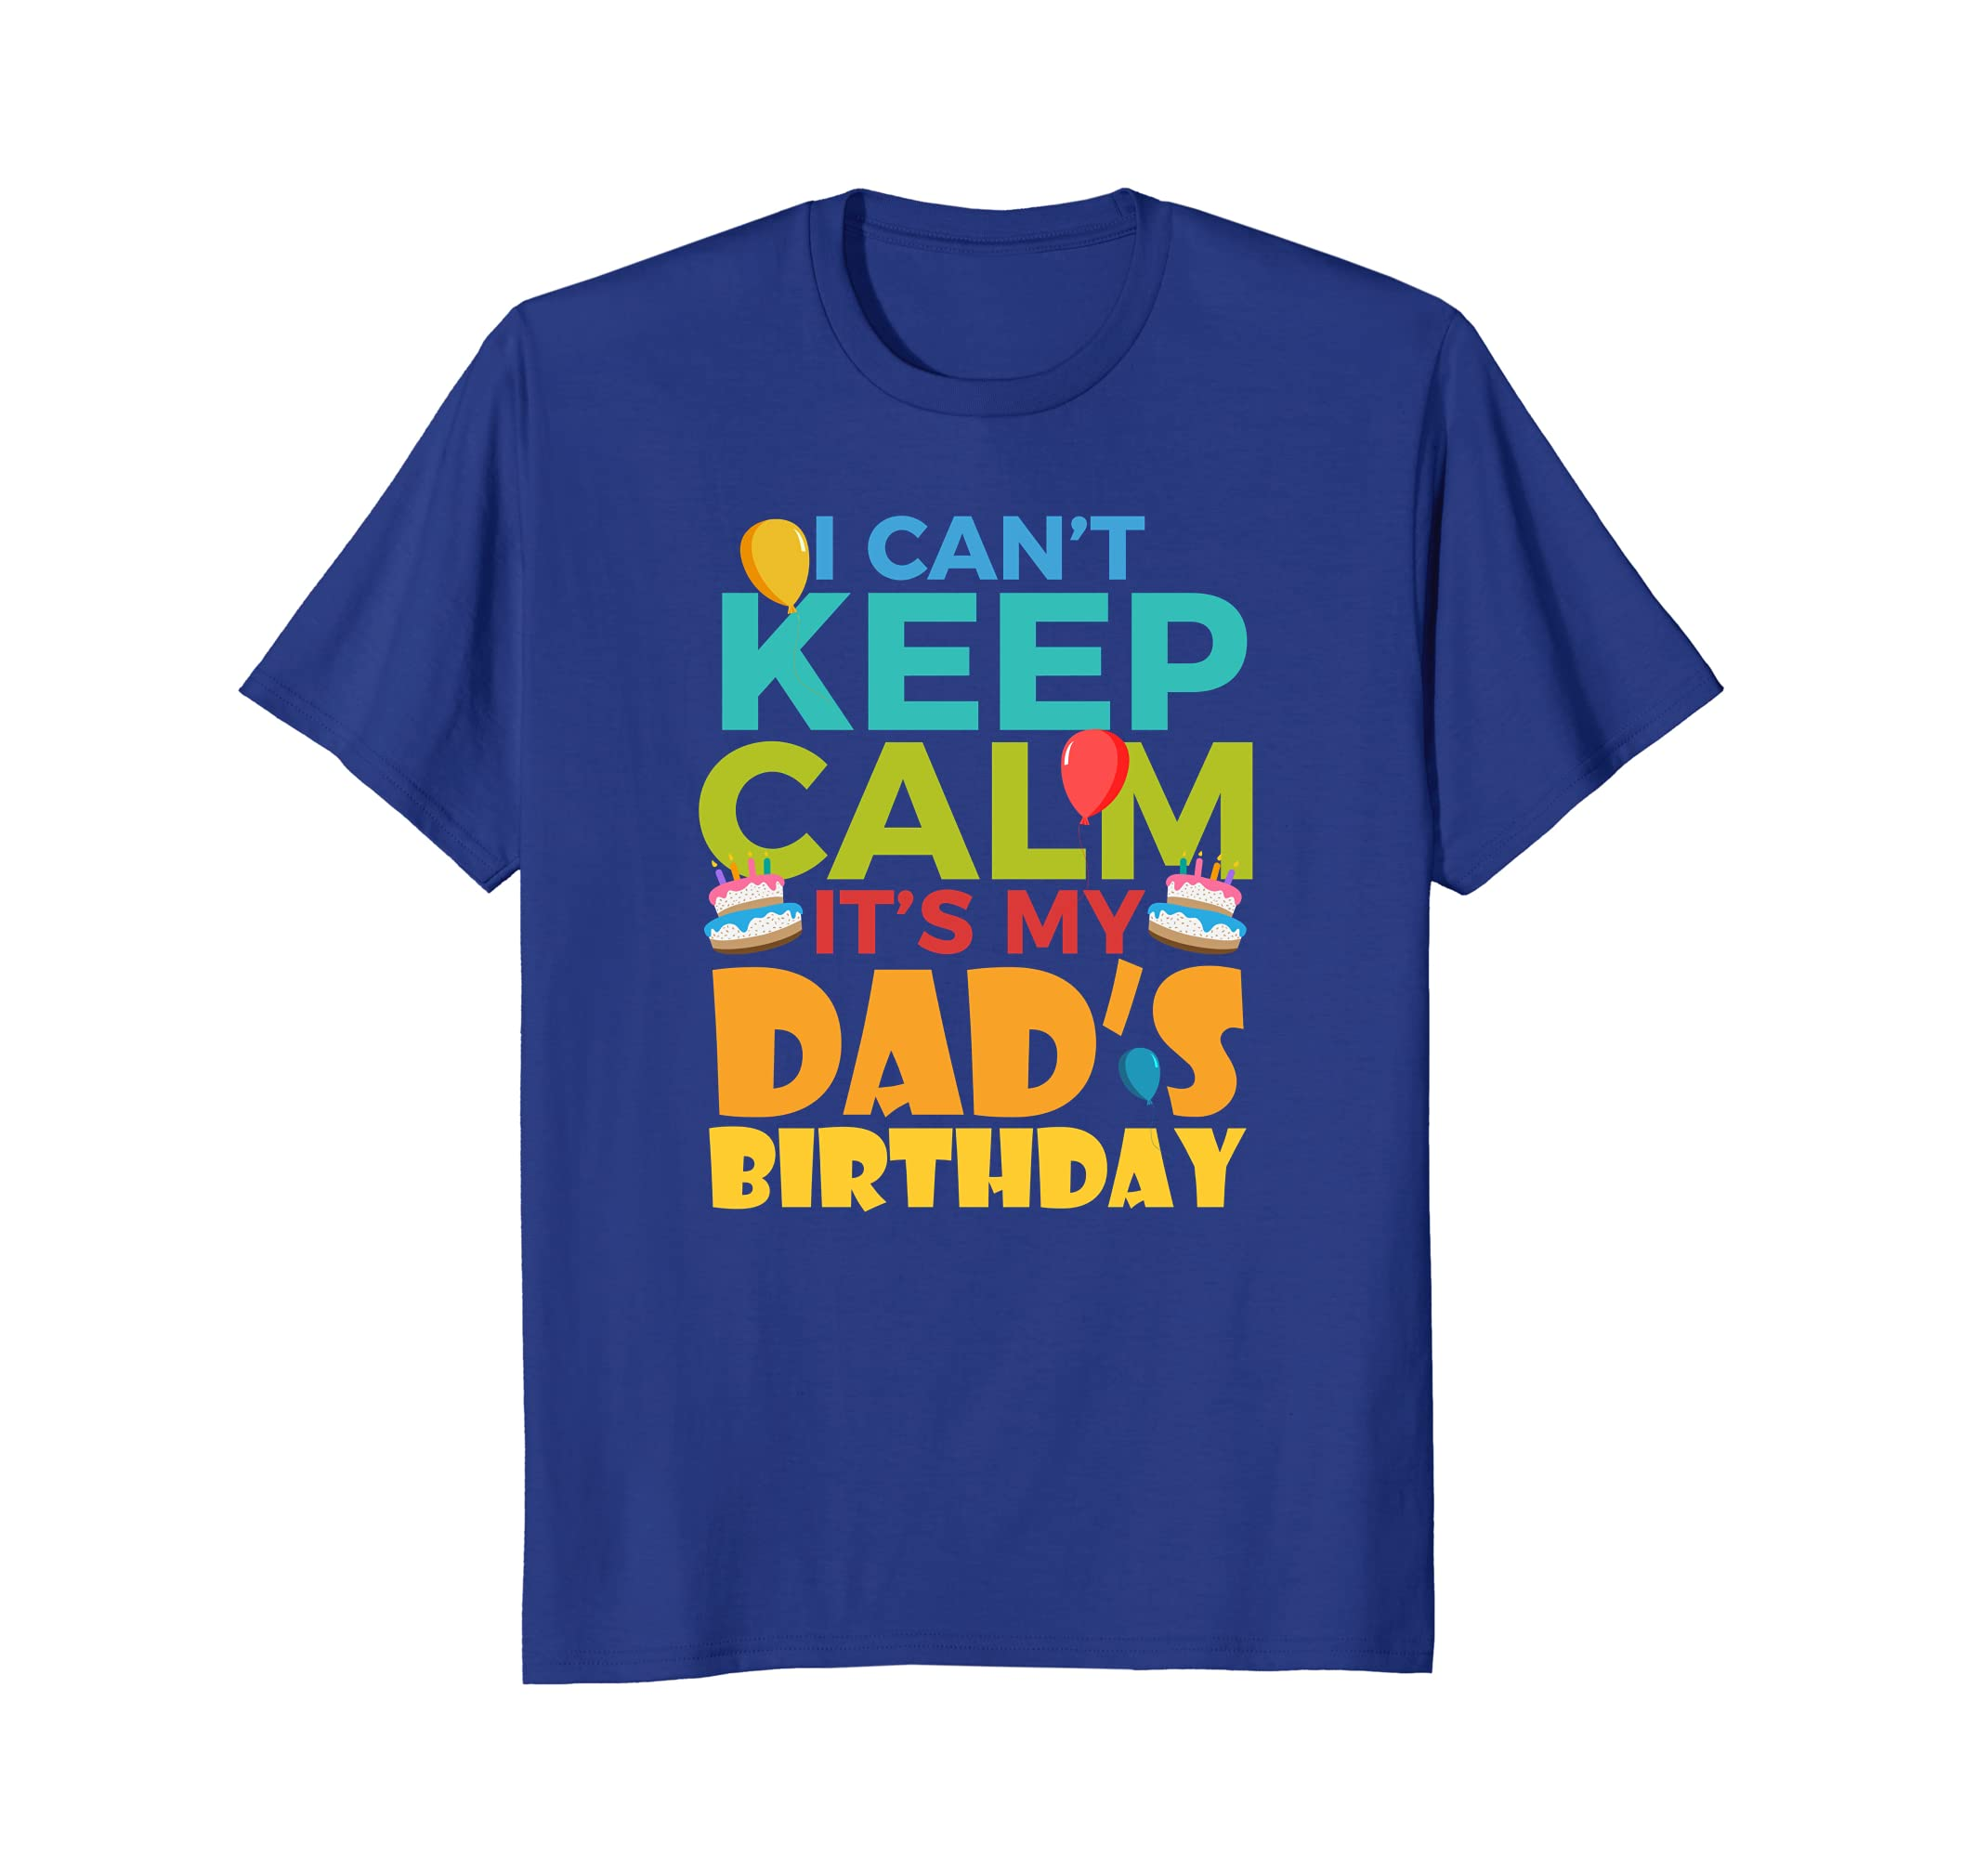 19810b6d0 I Cant Keep Calm Its My Dads Birthday Shirt Funny Daddy Tees-alottee gift